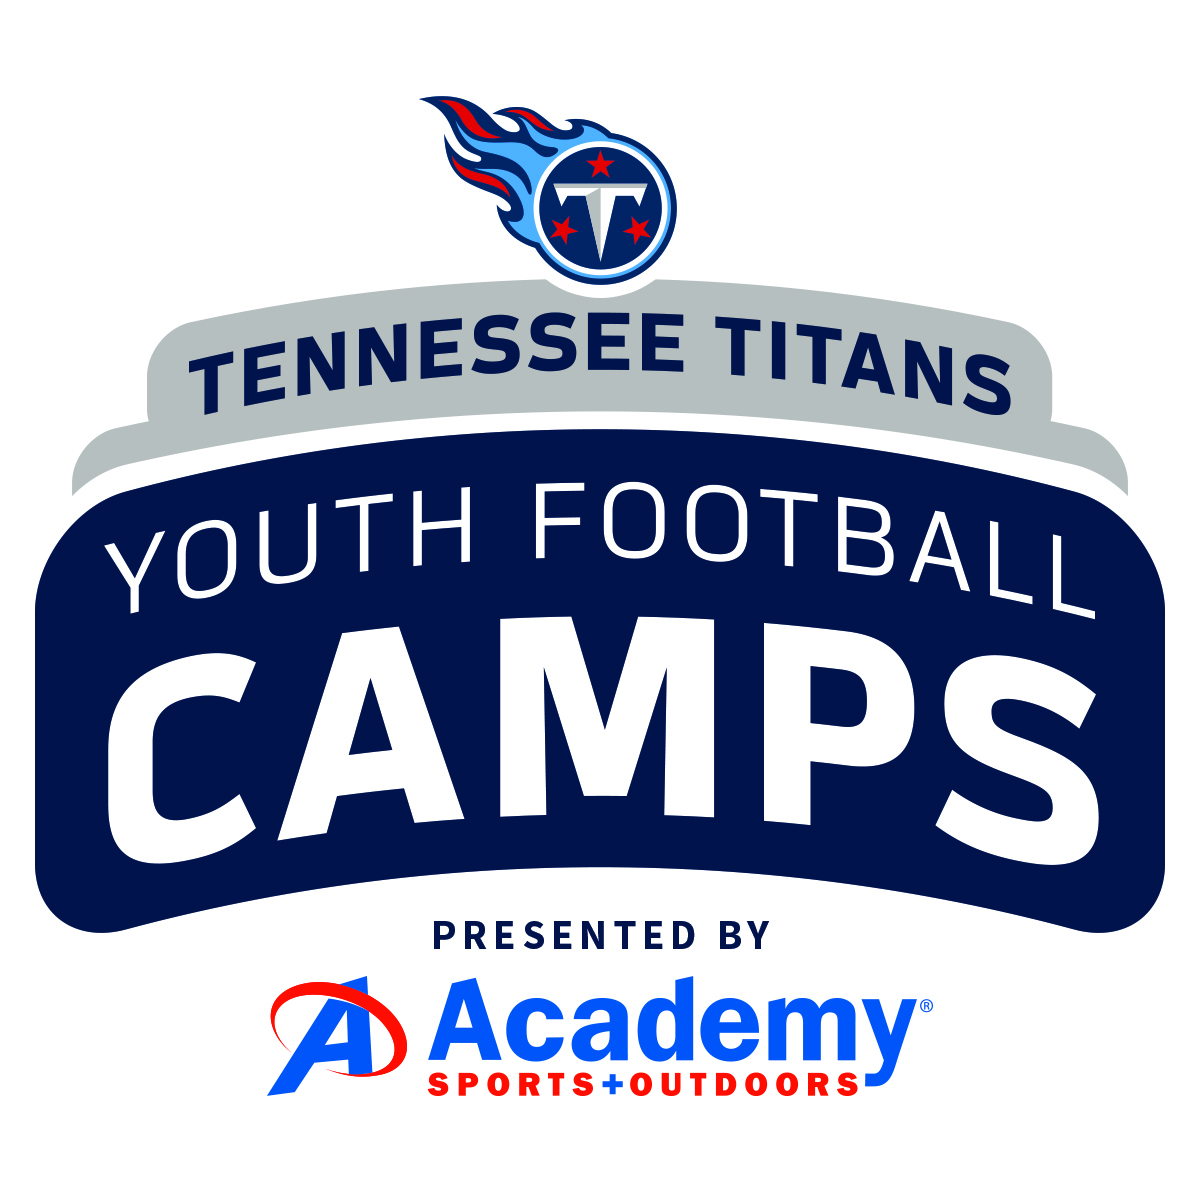 Tennessee Titans Youth Football Camps Pro Sports Experience